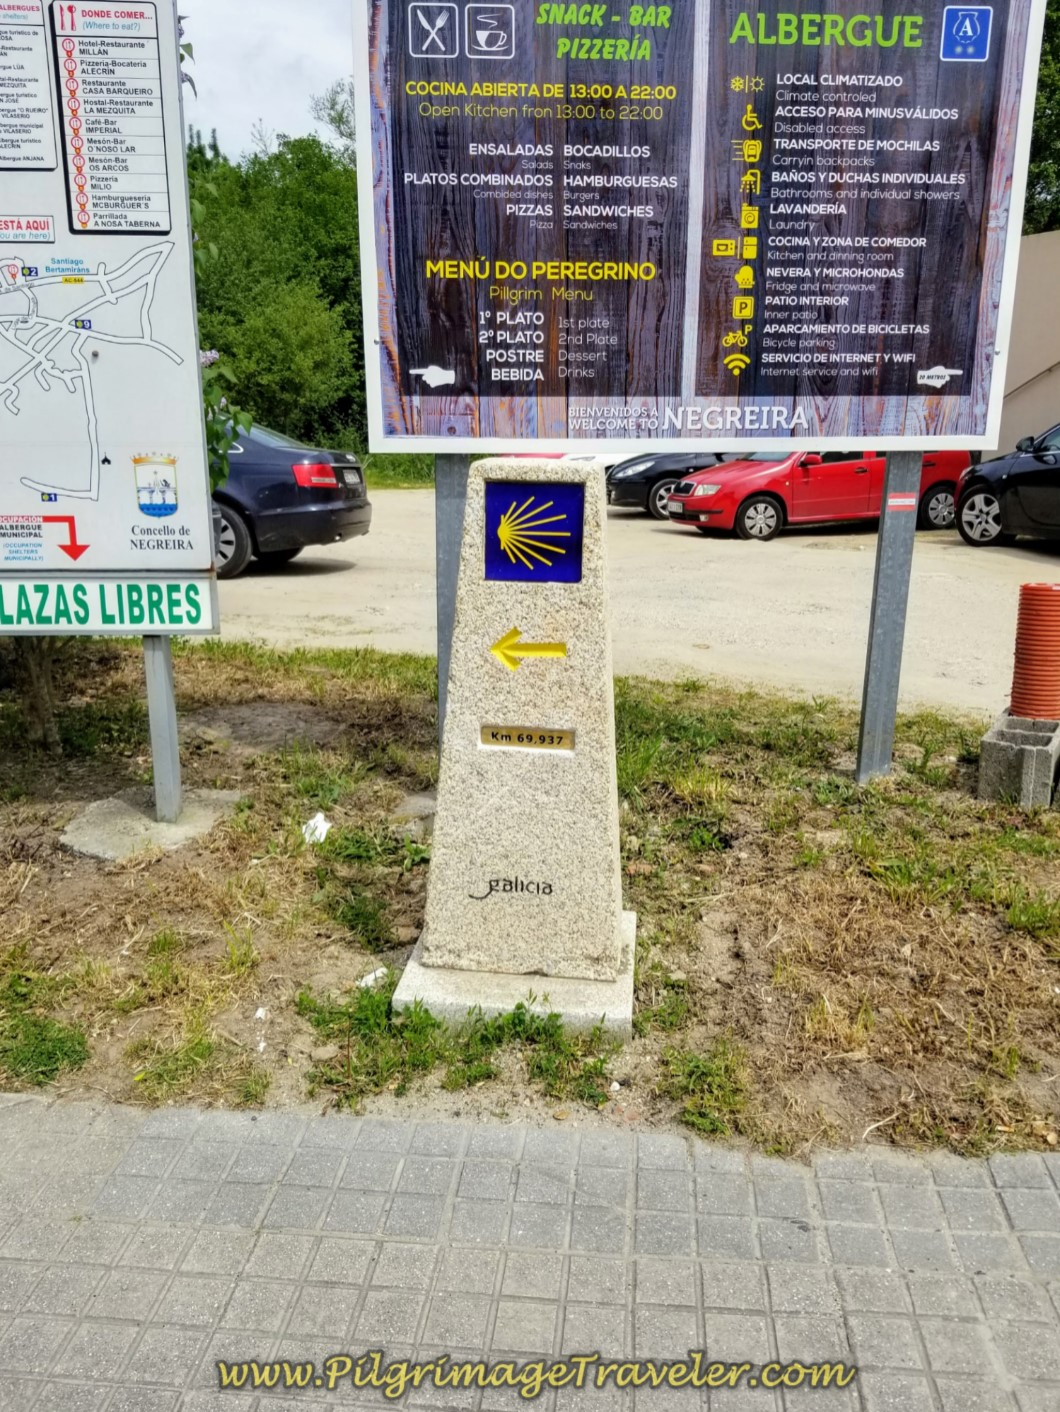 69.93 Kilometer Marker in Negreira on day one, Finisterre Way